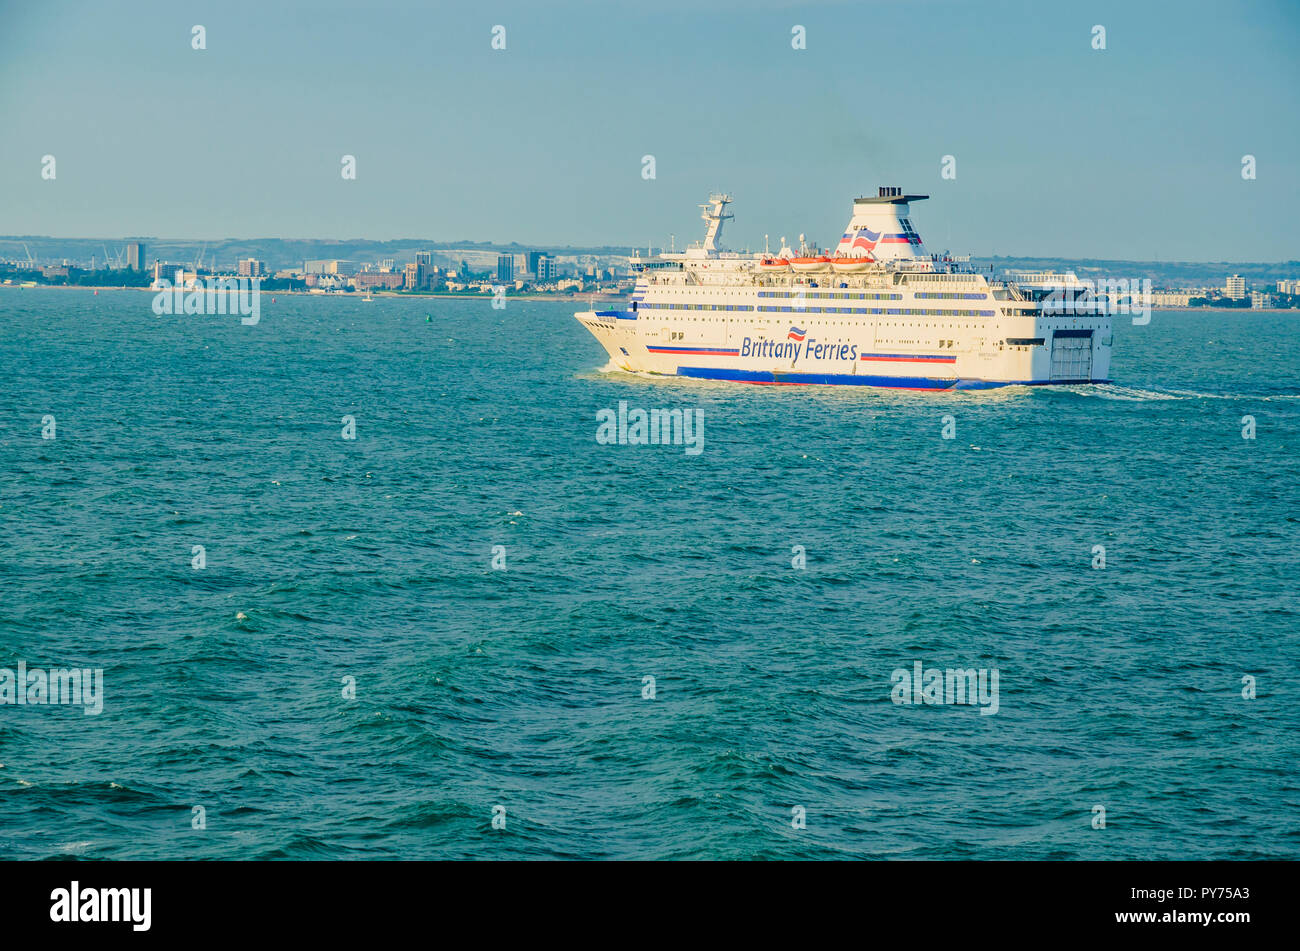 The Bretagne ferry from the Britanny Ferries shipping company, sailing to Portsmouth Harbour.Portsmouth, Hampshire, England, United Kingdom, UK, Europ - Stock Image